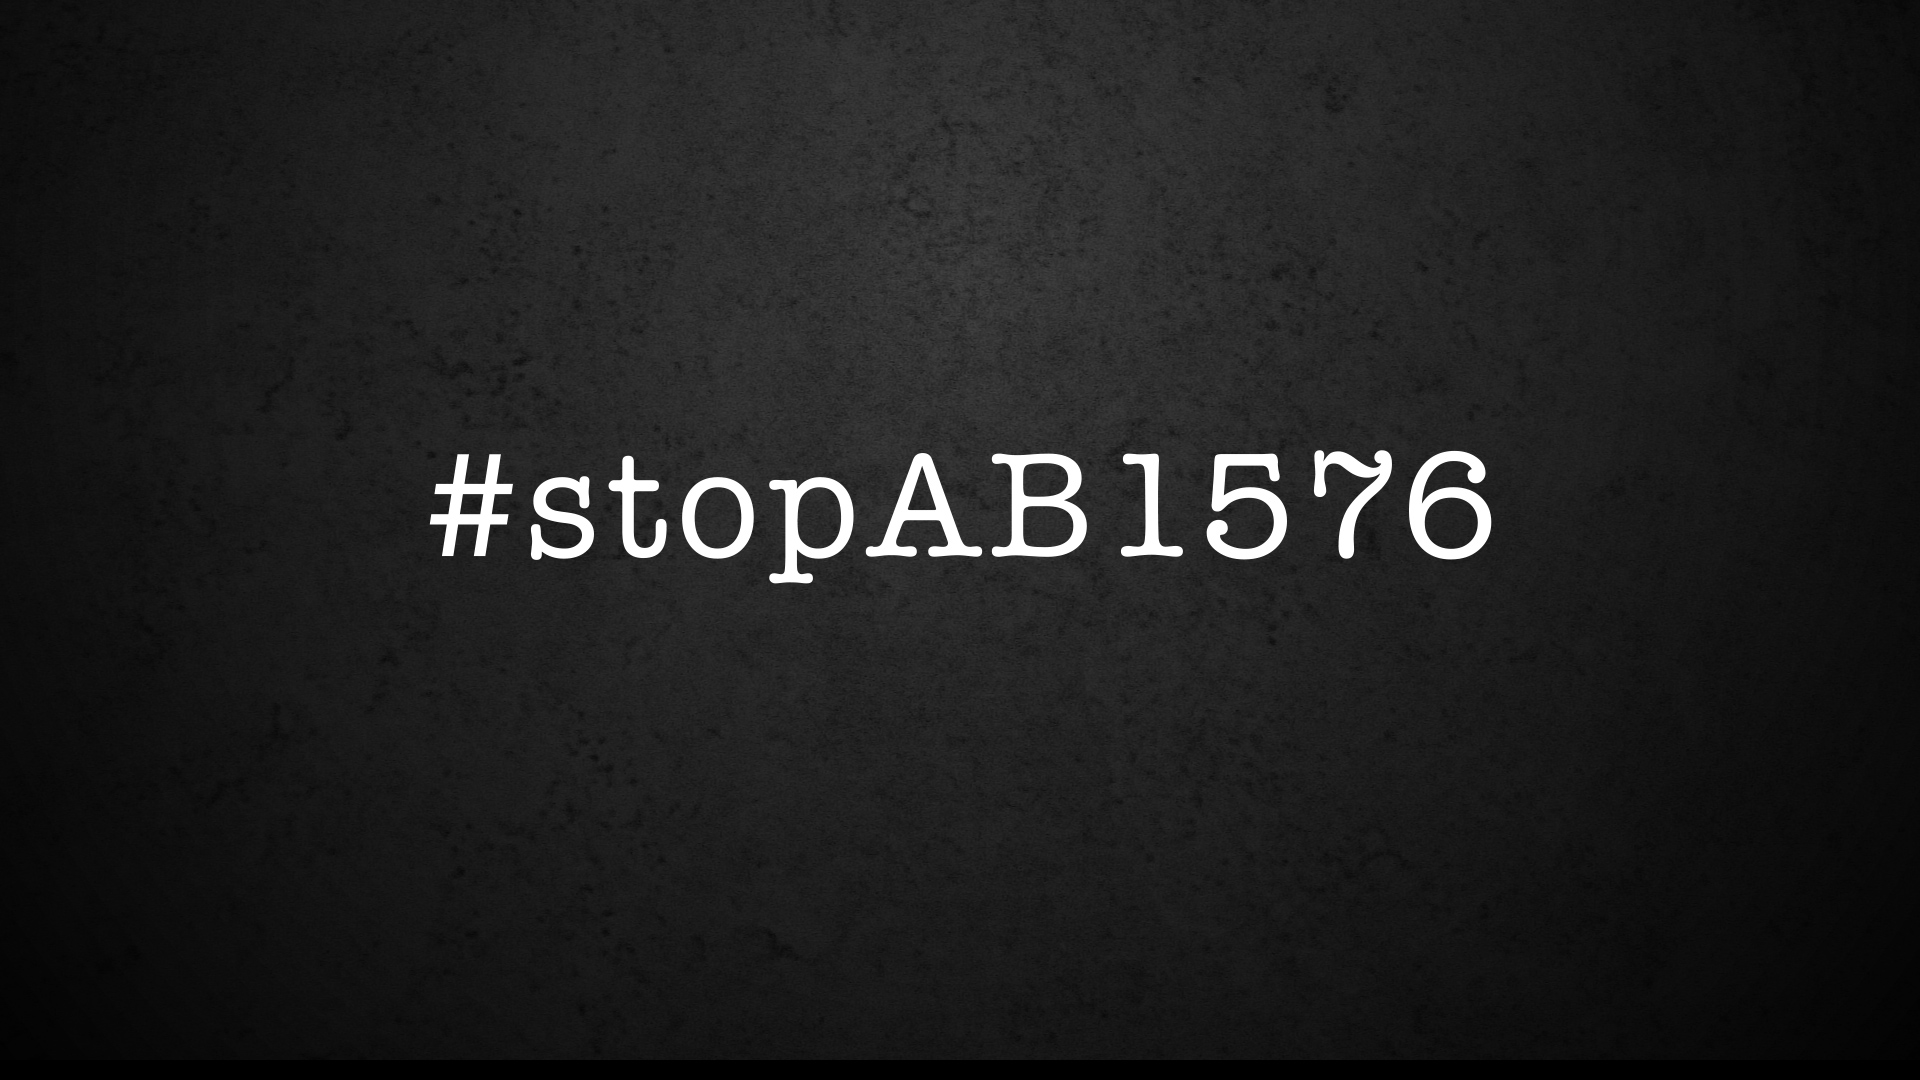 An important message to all performers! STOP AB 1576!